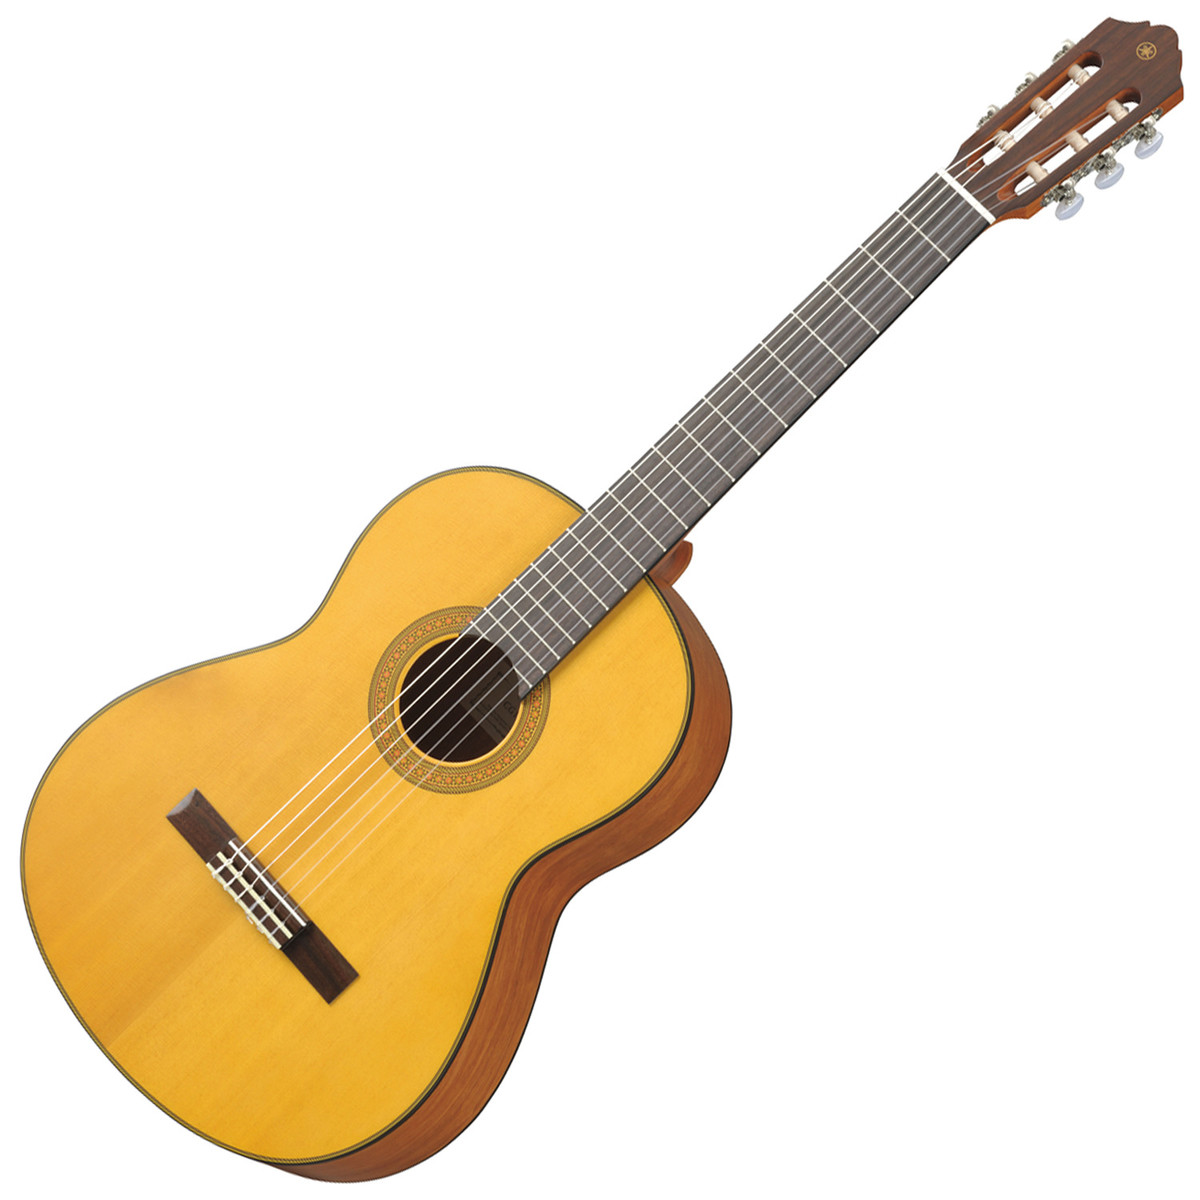 yamaha cg122s classical acoustic guitar natural b stock at gear4music. Black Bedroom Furniture Sets. Home Design Ideas